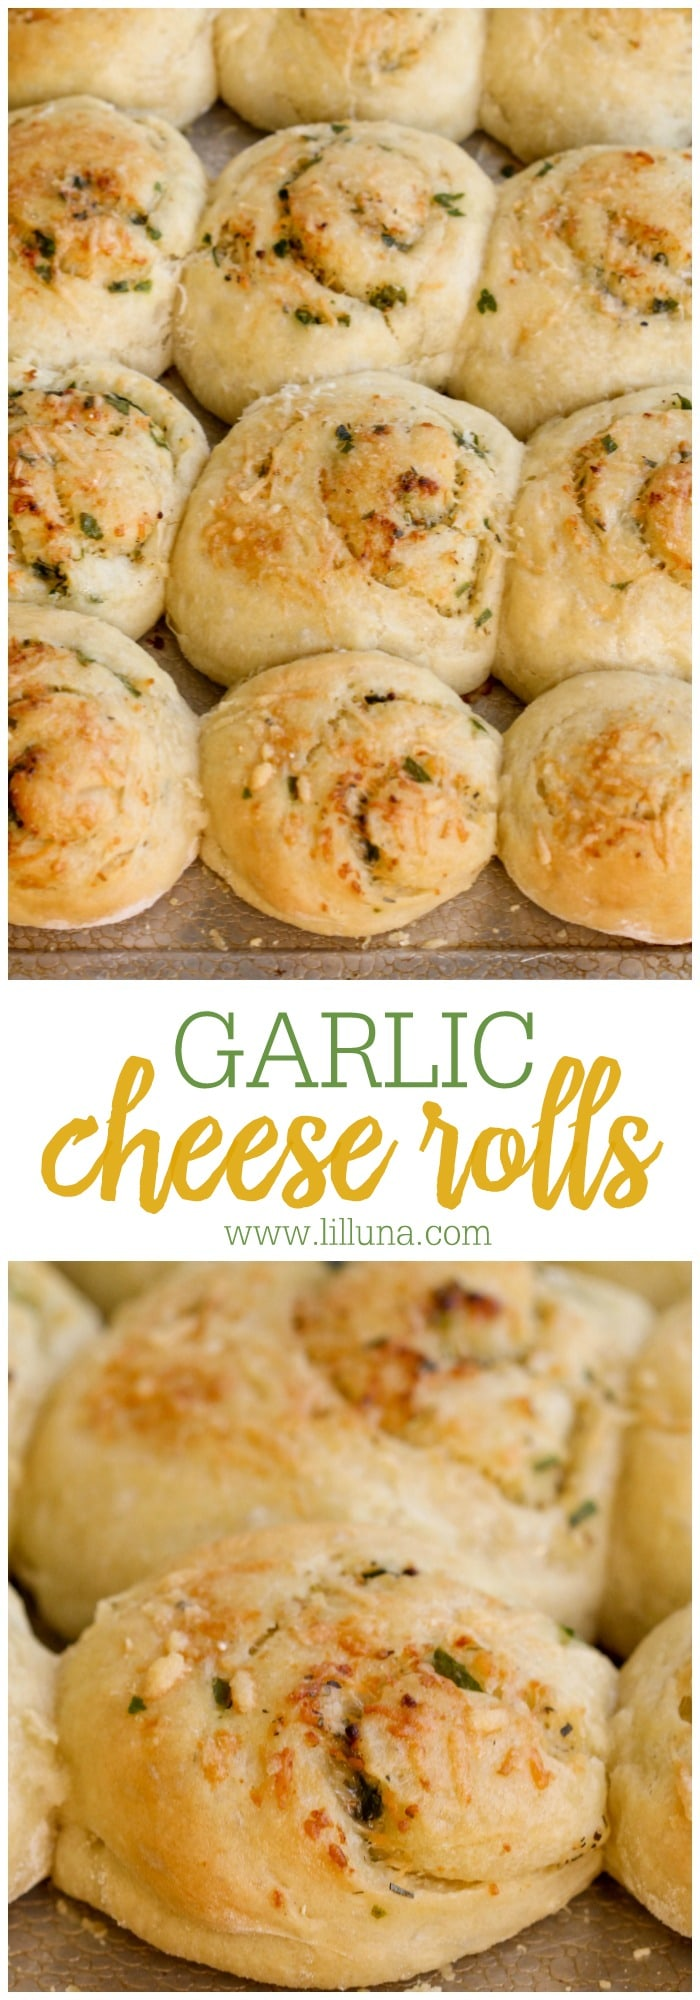 Super cheesy and delicious Garlic Rolls - a great side dish recipe that is perfect with any meal.